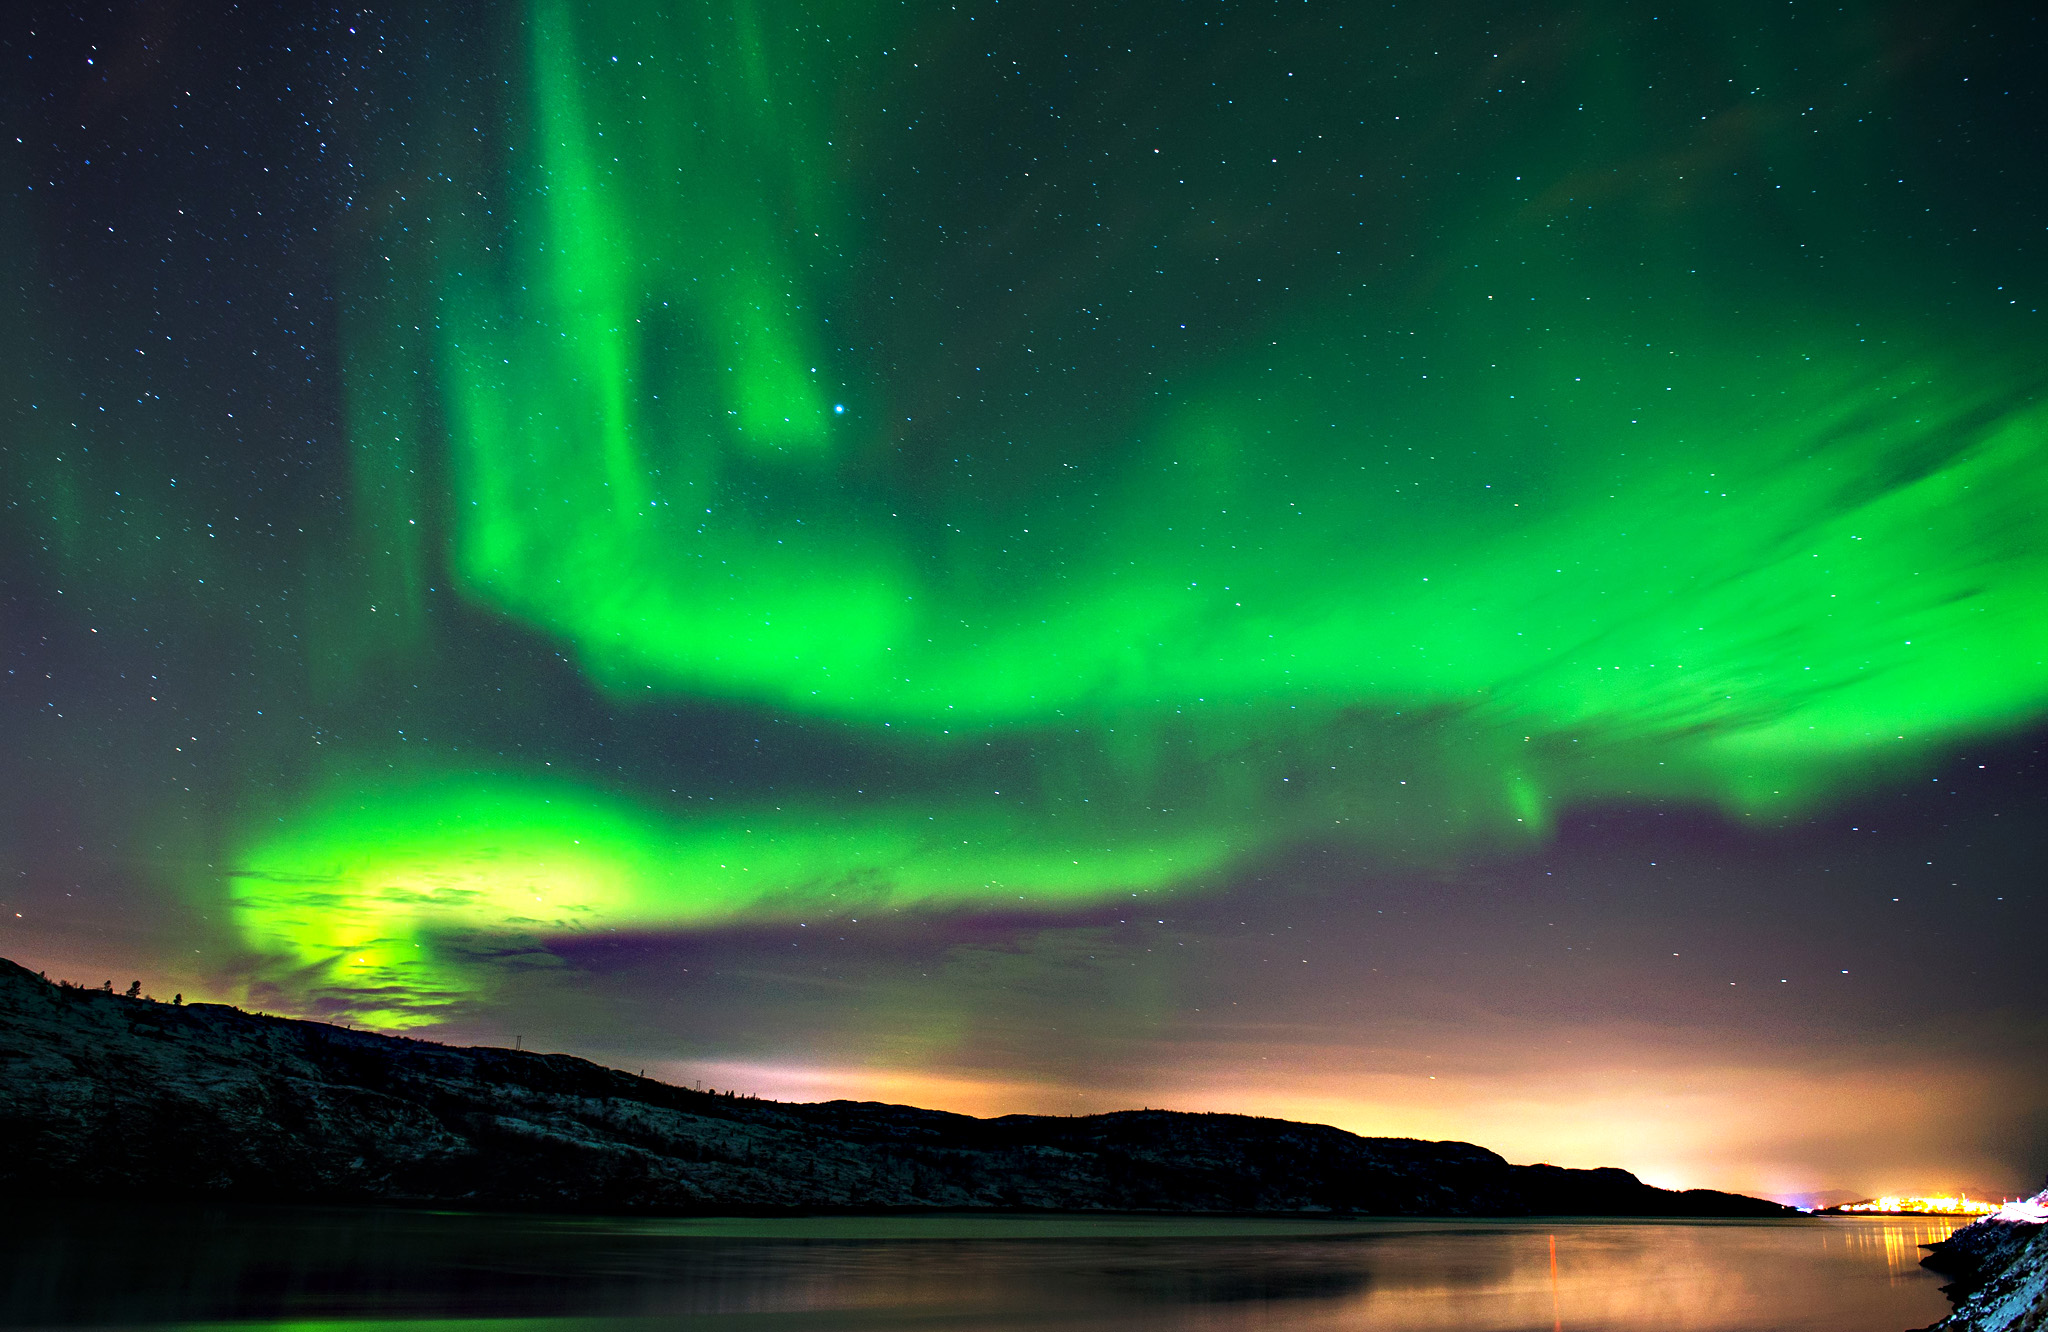 The Aurora Borealis or Northern Lights illuminate the night sky near the town of Kirkenes in northern Norway.